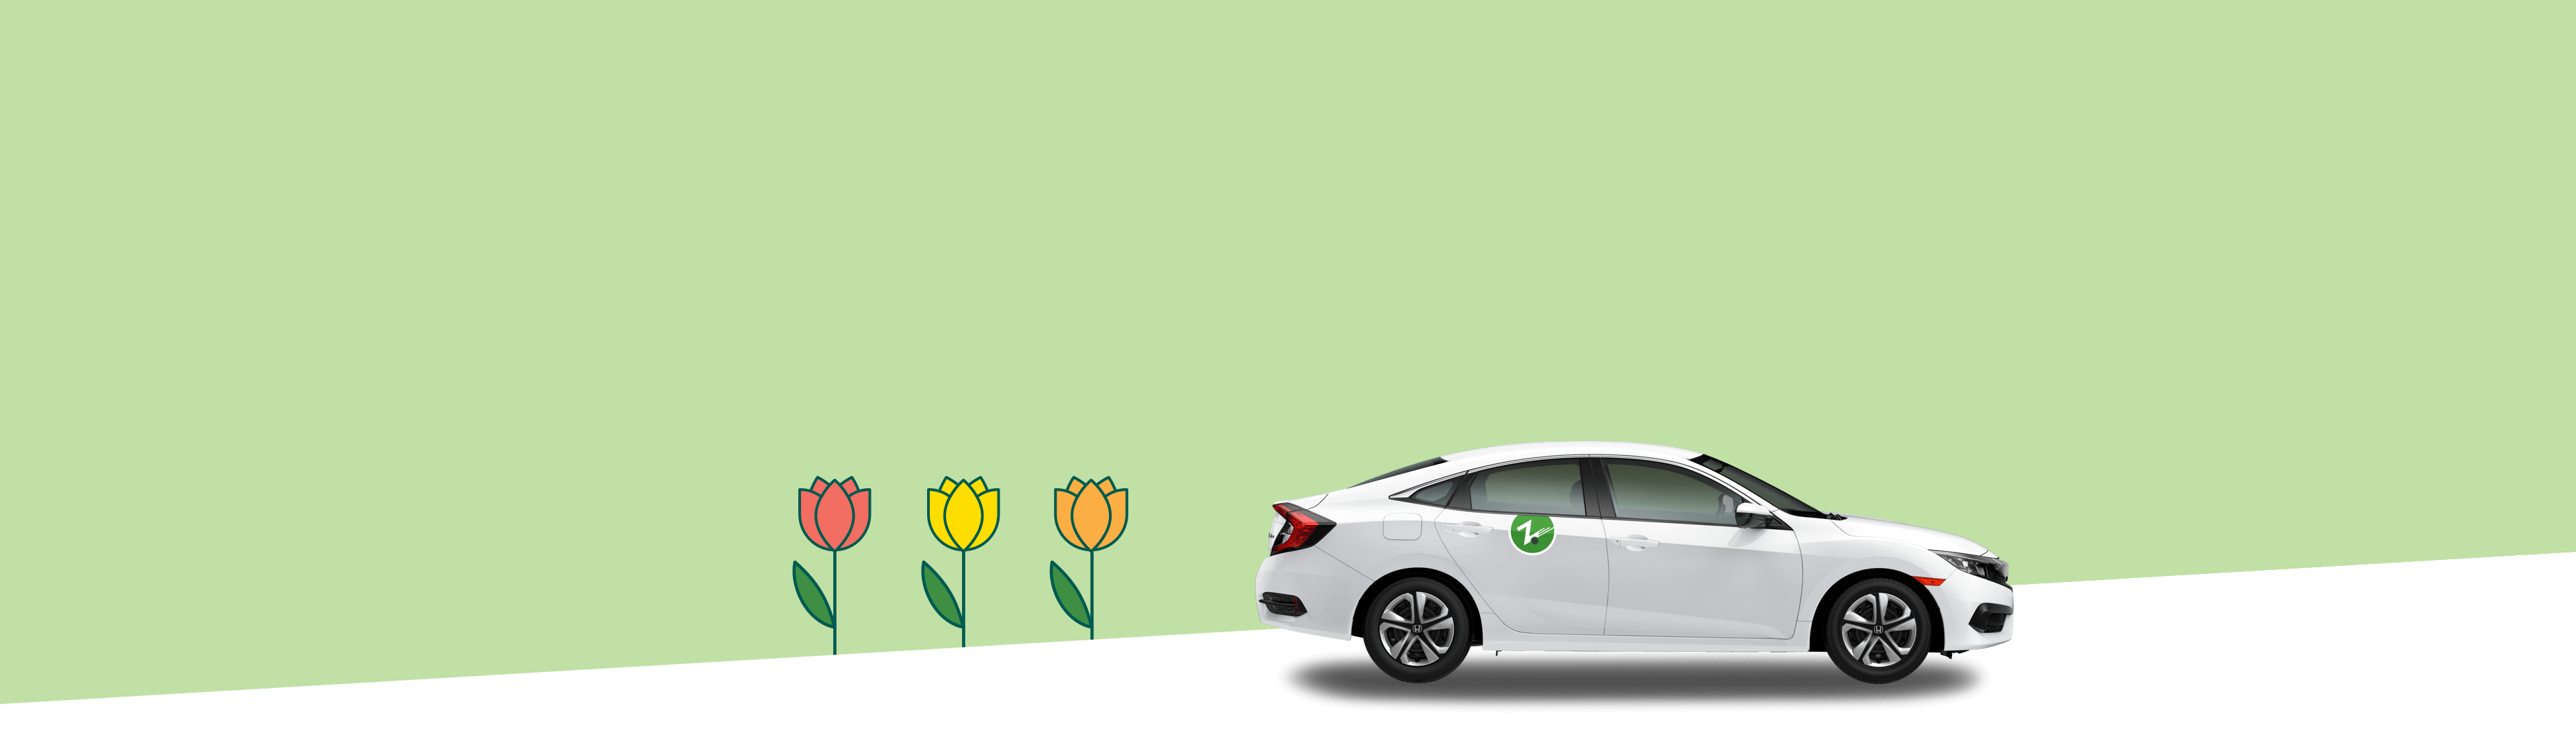 Light green background with illustrated tulips and a Zipcar in front of it